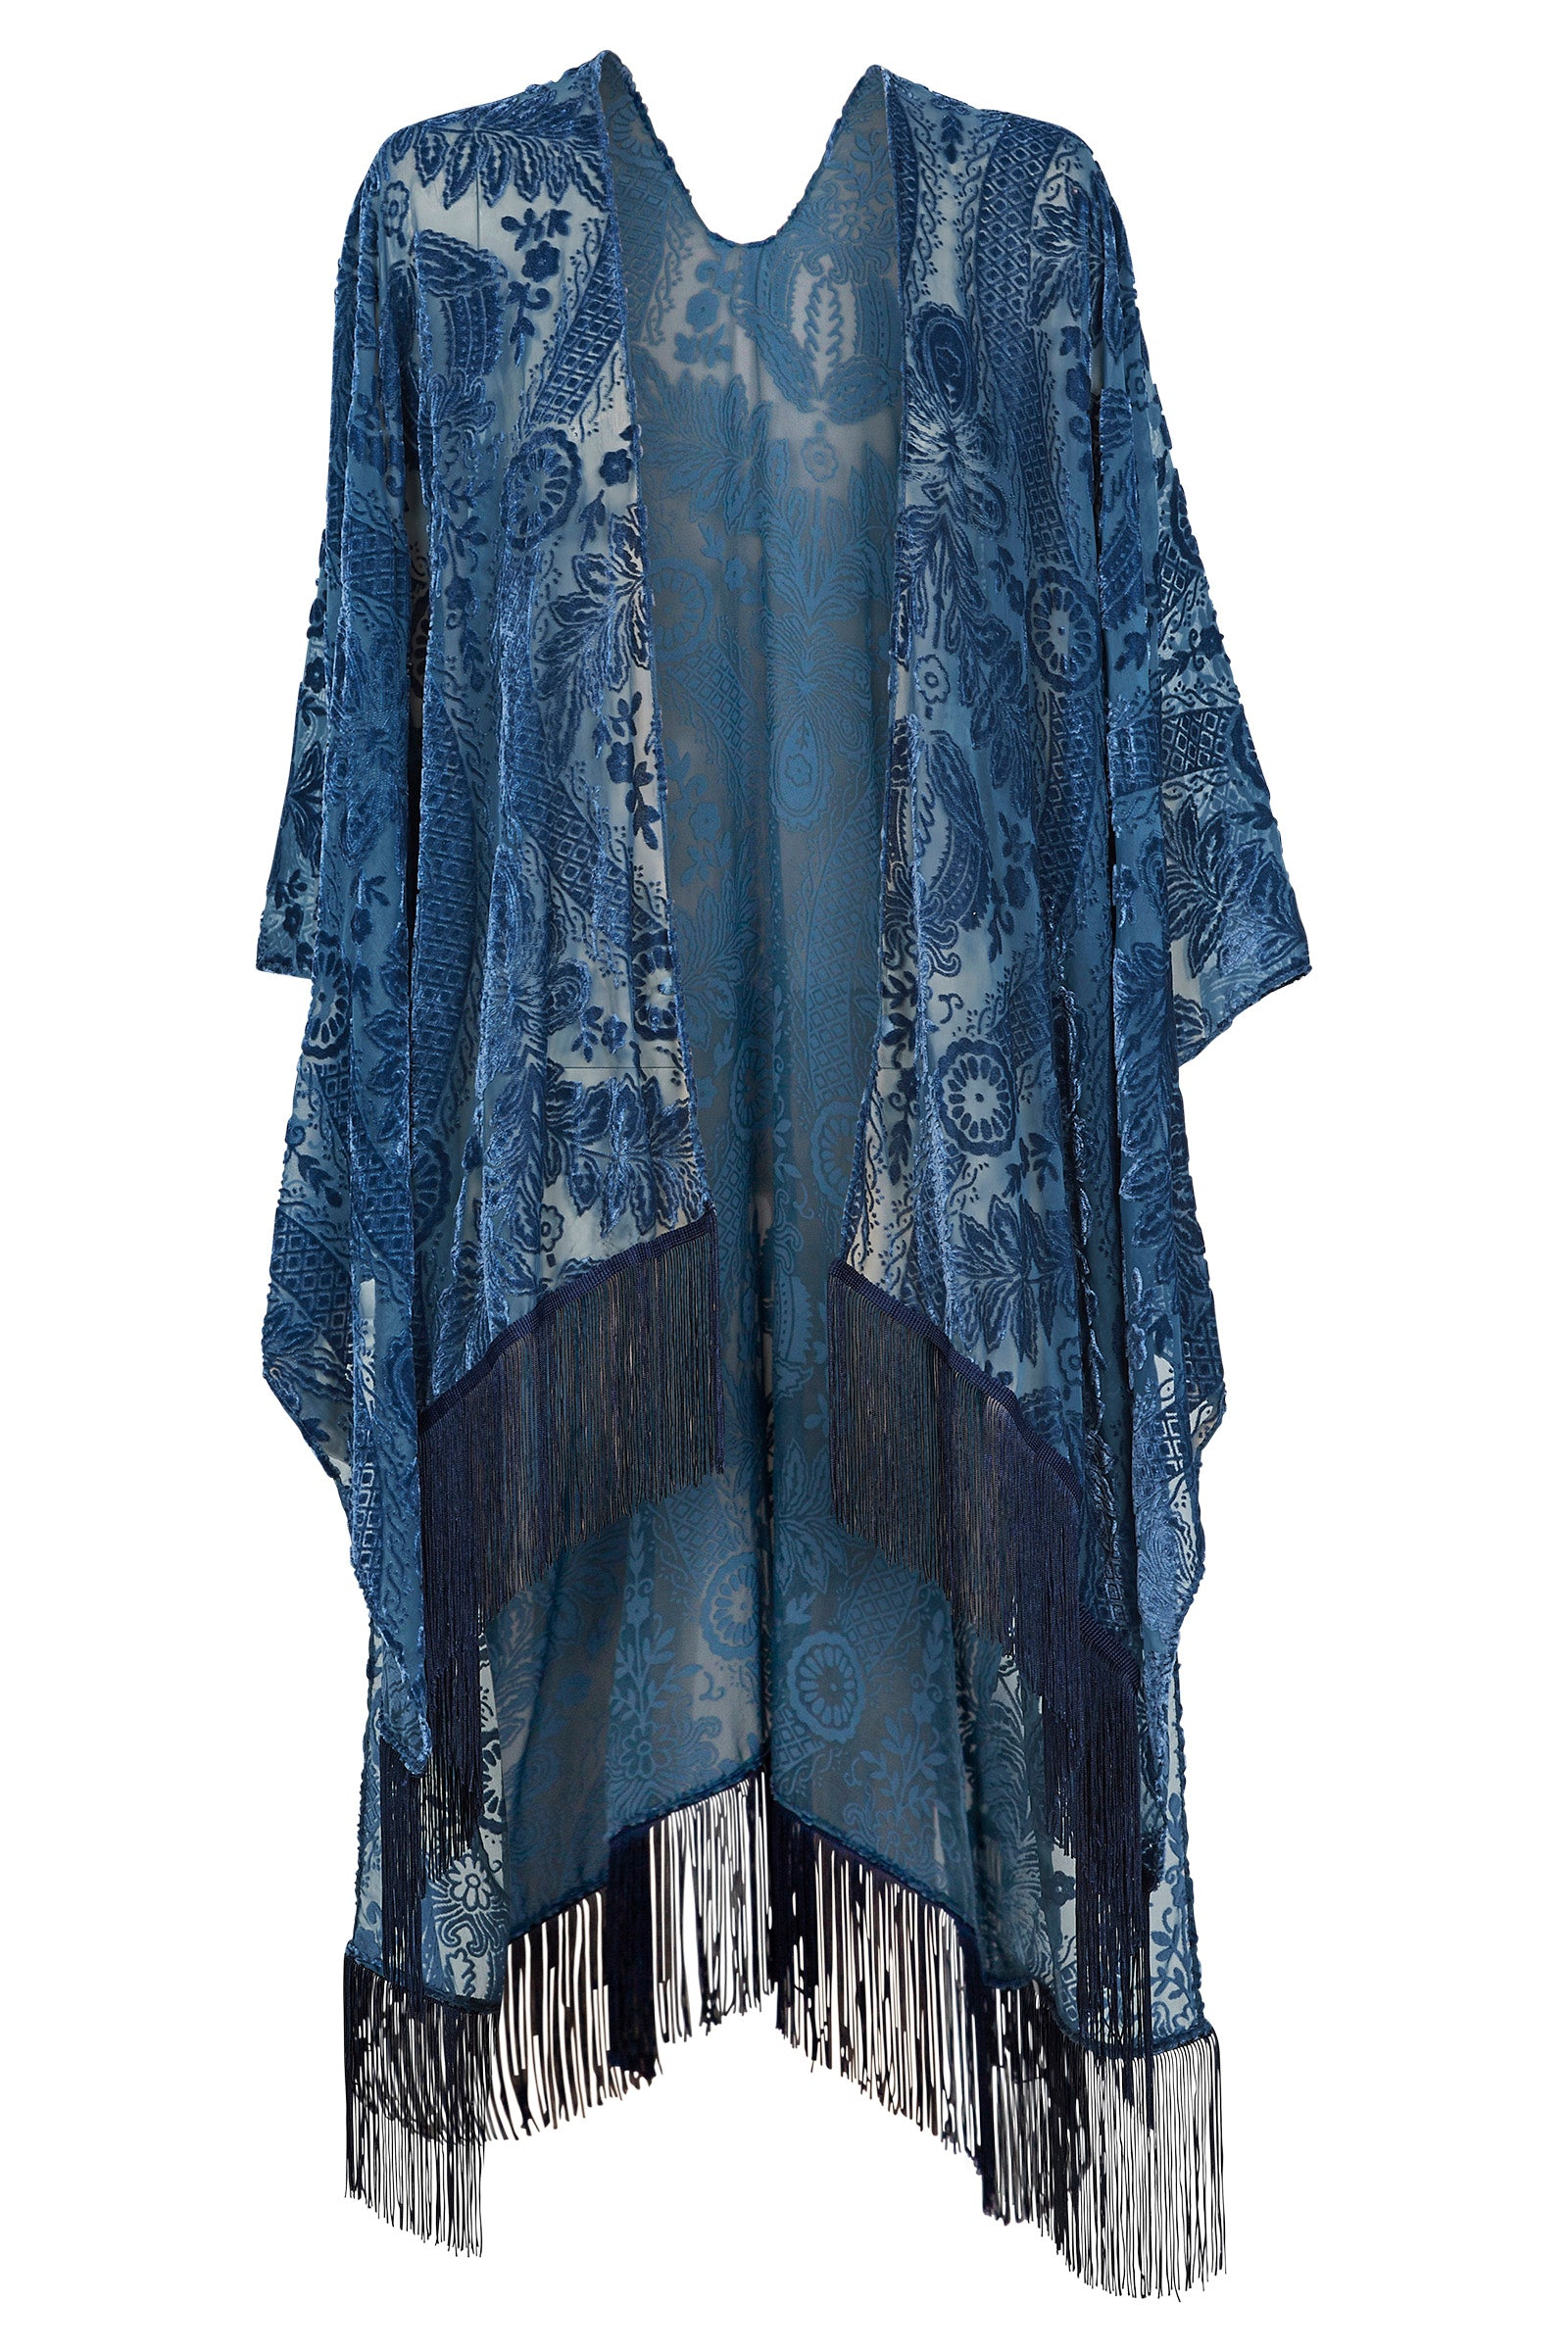 Luxe Cape - Midnight - eb&ive Clothing - Kimono Cape Long One Size